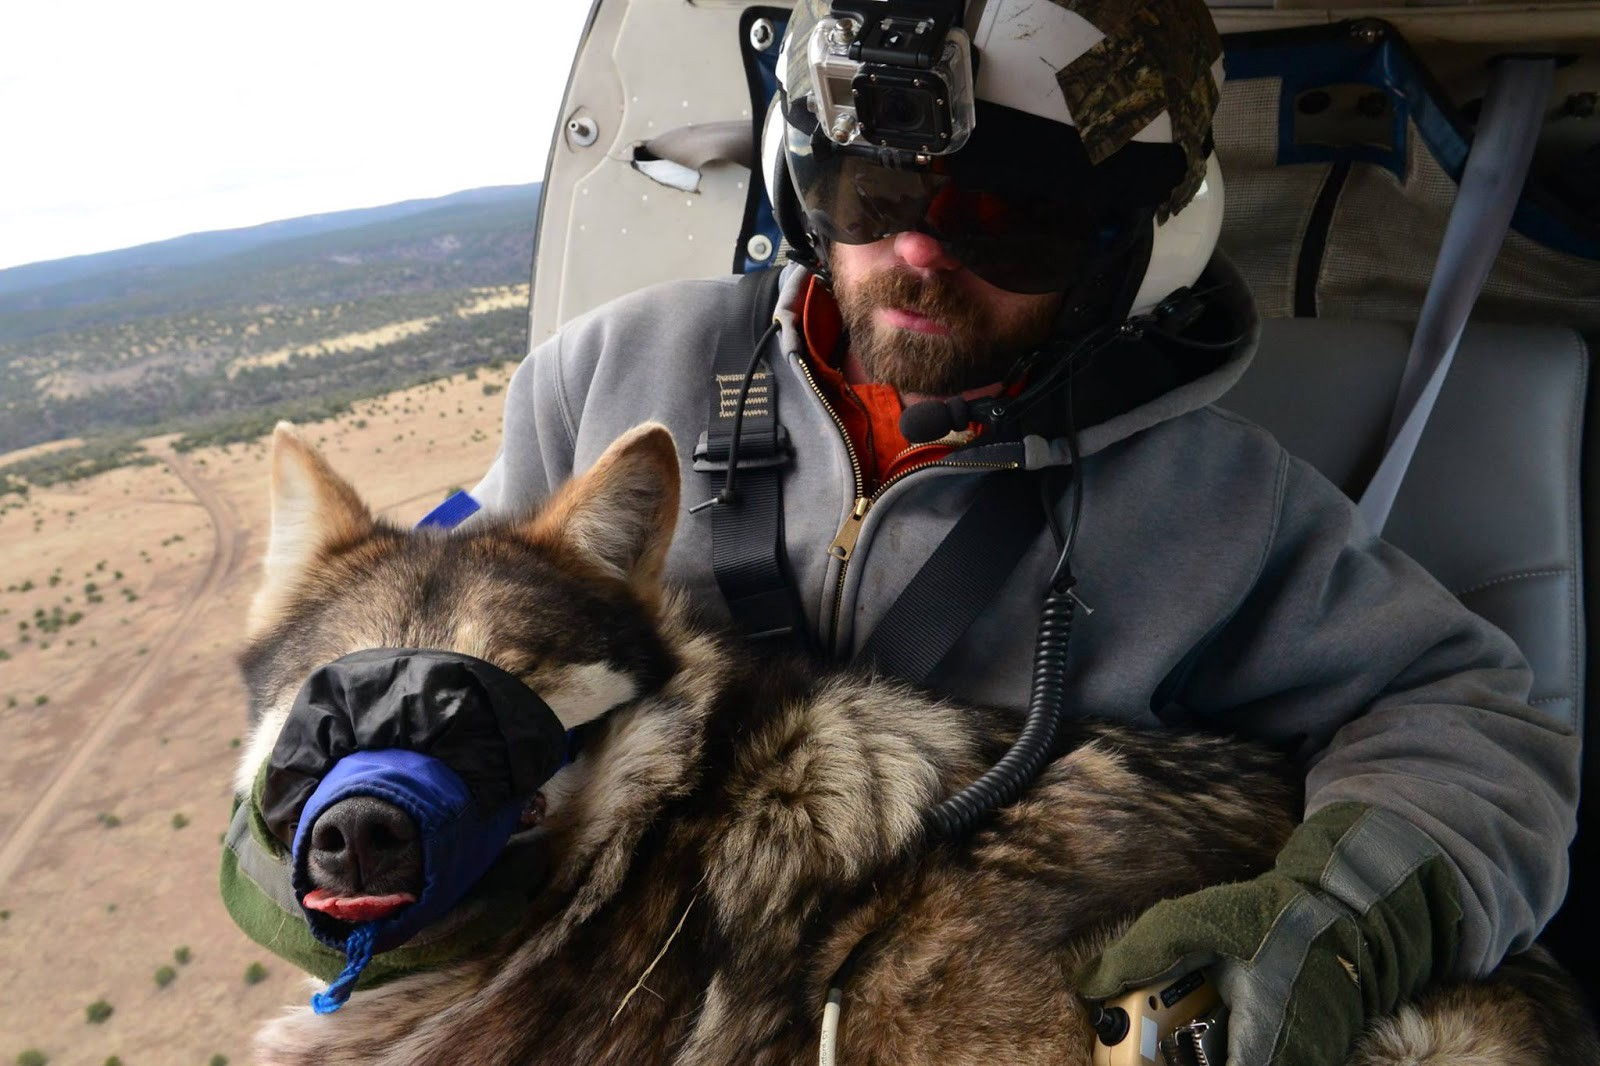 A member of the interagency team sits in a helicopter with a sedated wolf held in his lap.